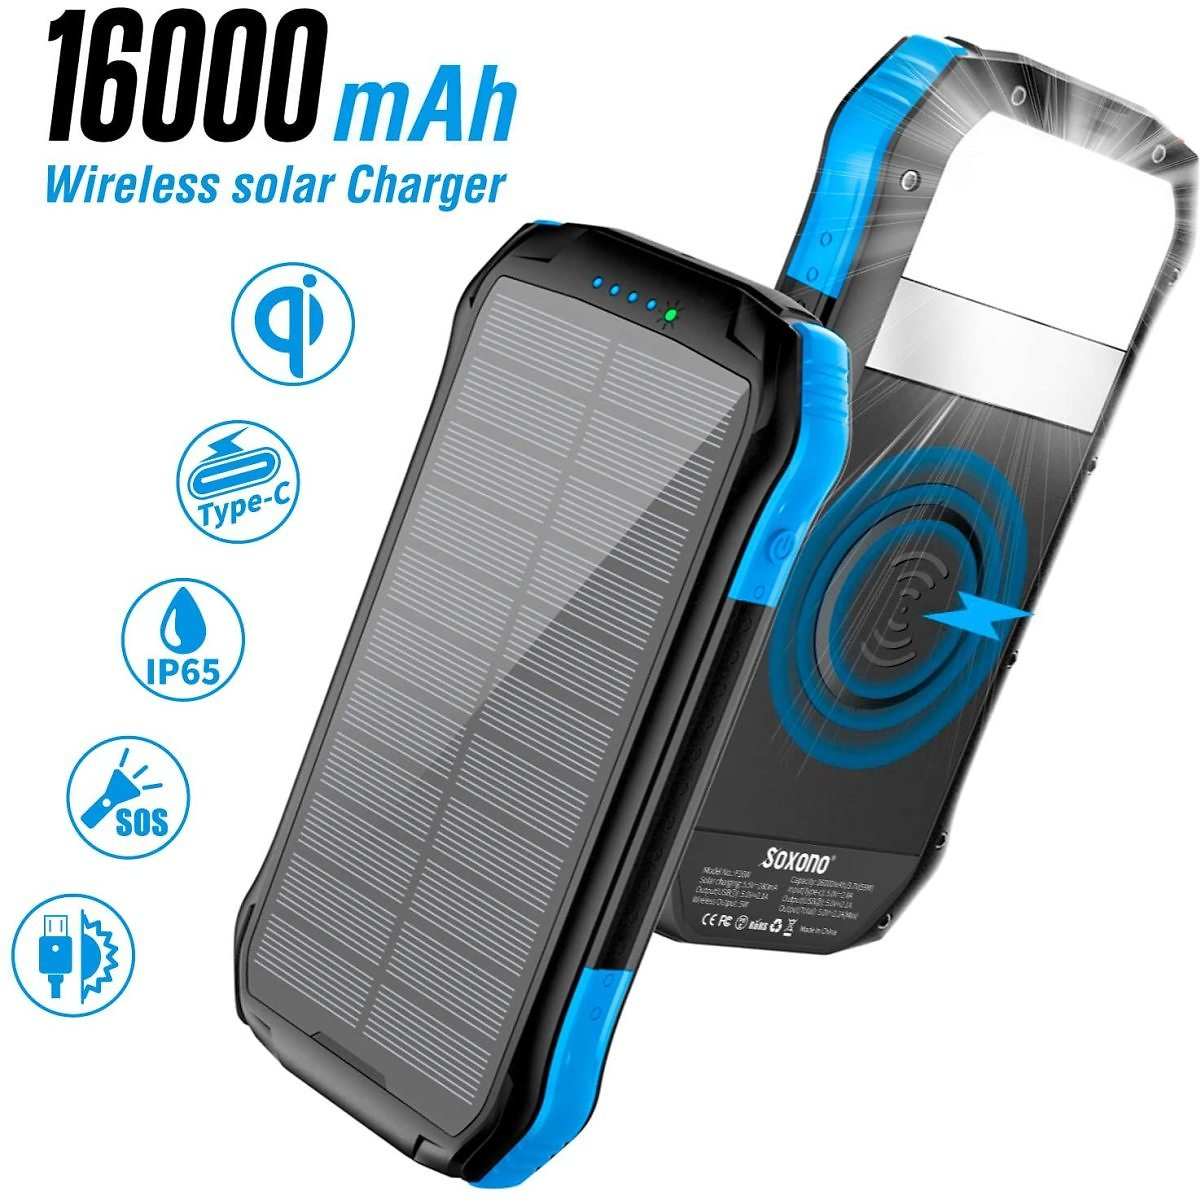 16000mAh Solar Charger with 2-USB Port Ultra Portable Phone Charger Power Bank External Battery Pack with 15 LEDs Flashlight